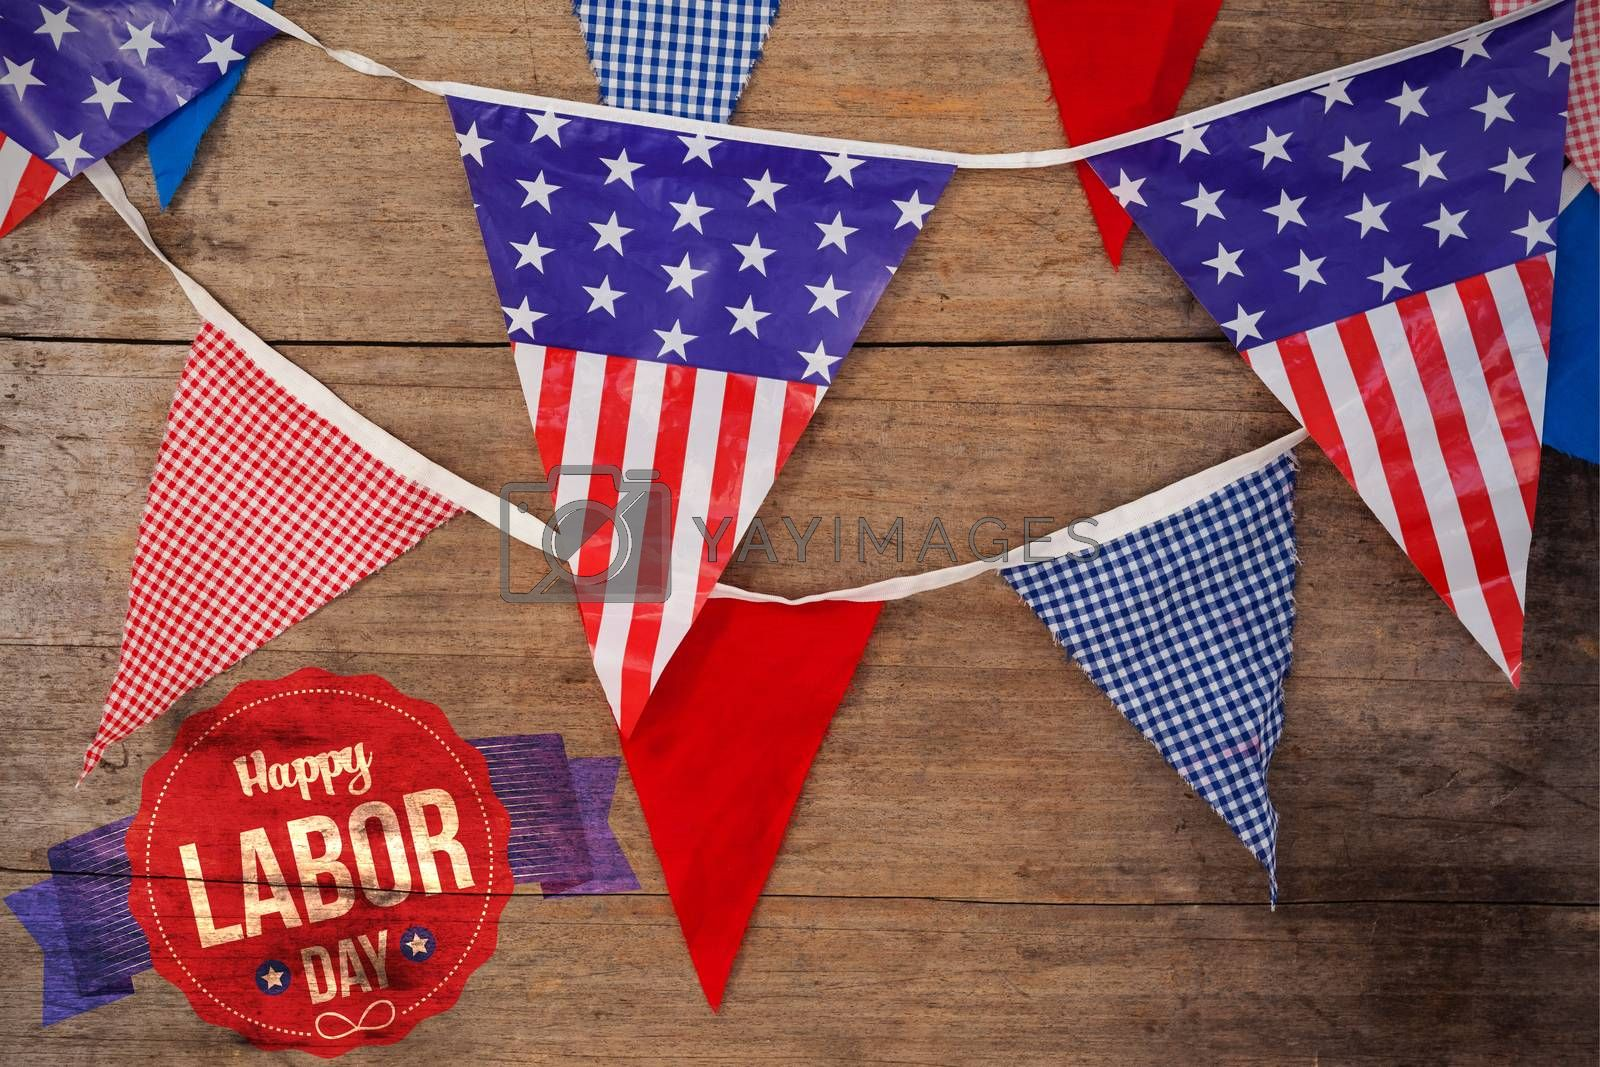 Composite image of happy labor day text in banner by Wavebreakmedia